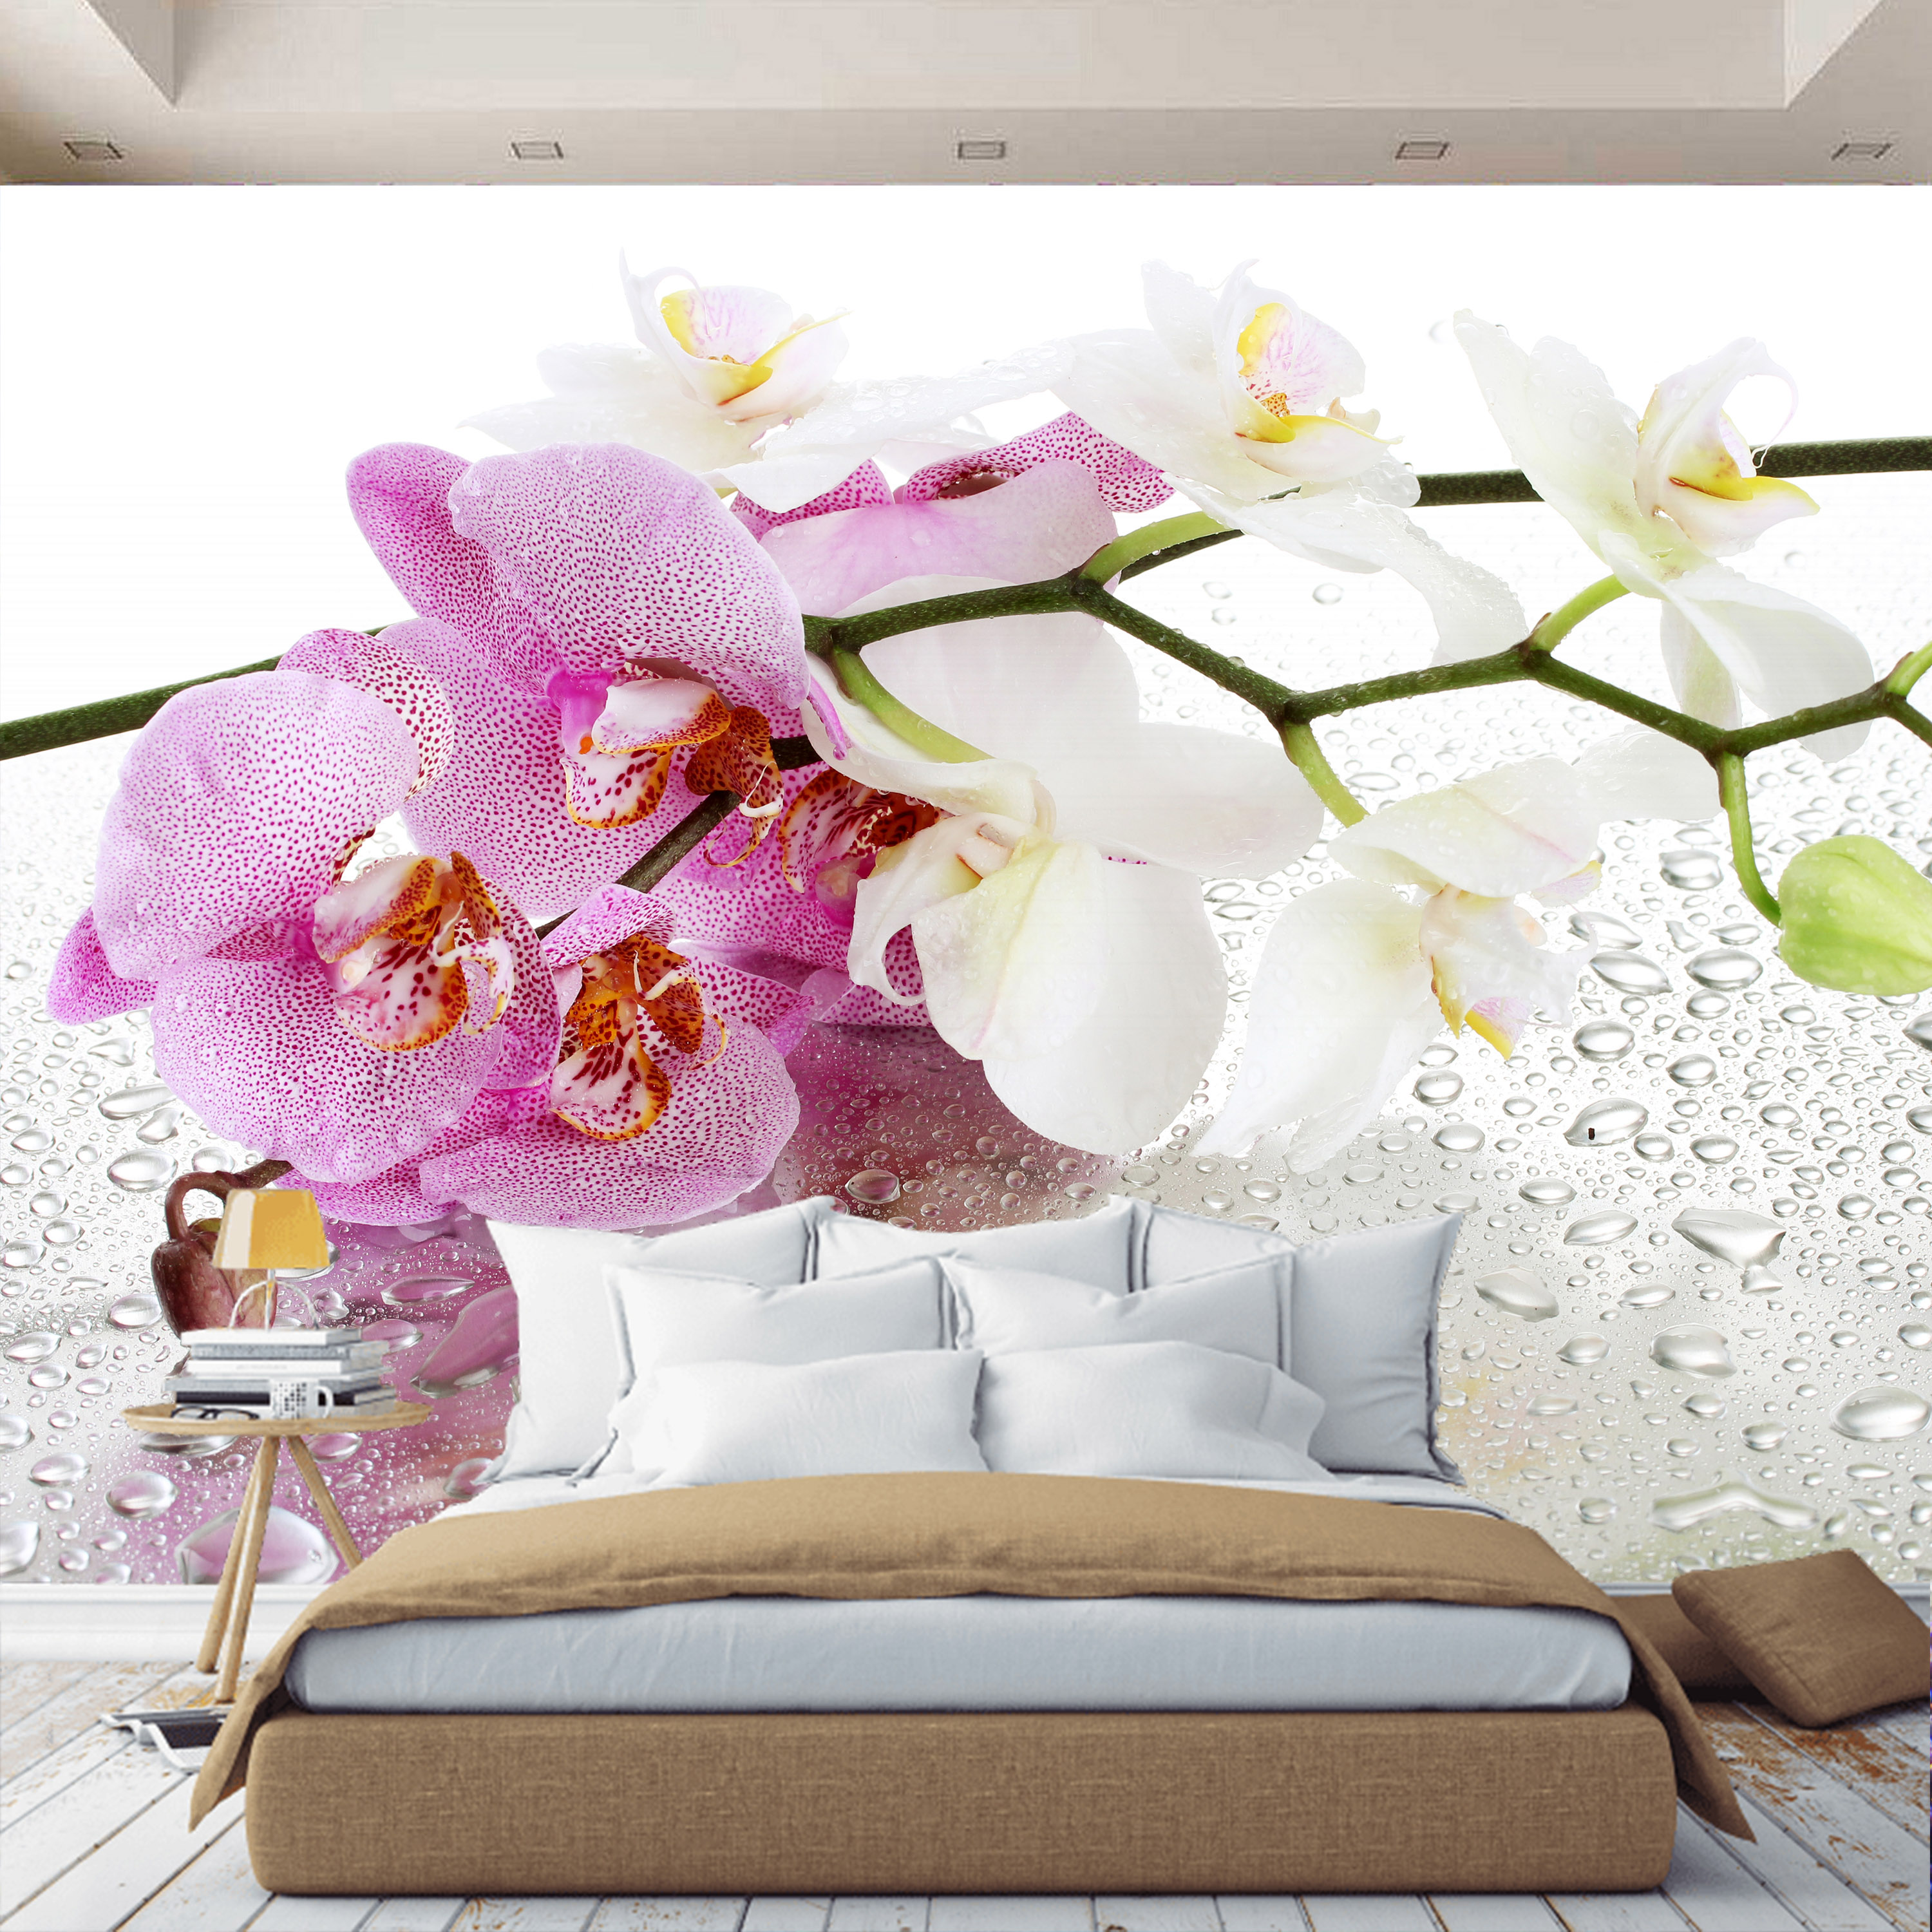 3D Photo Wallpaper Wall Paper Orchid Flowers, Wall Paper Custom Made, For Room, Kitchen, Bedroom, Children's, Photo Wallpaper Enhance Space